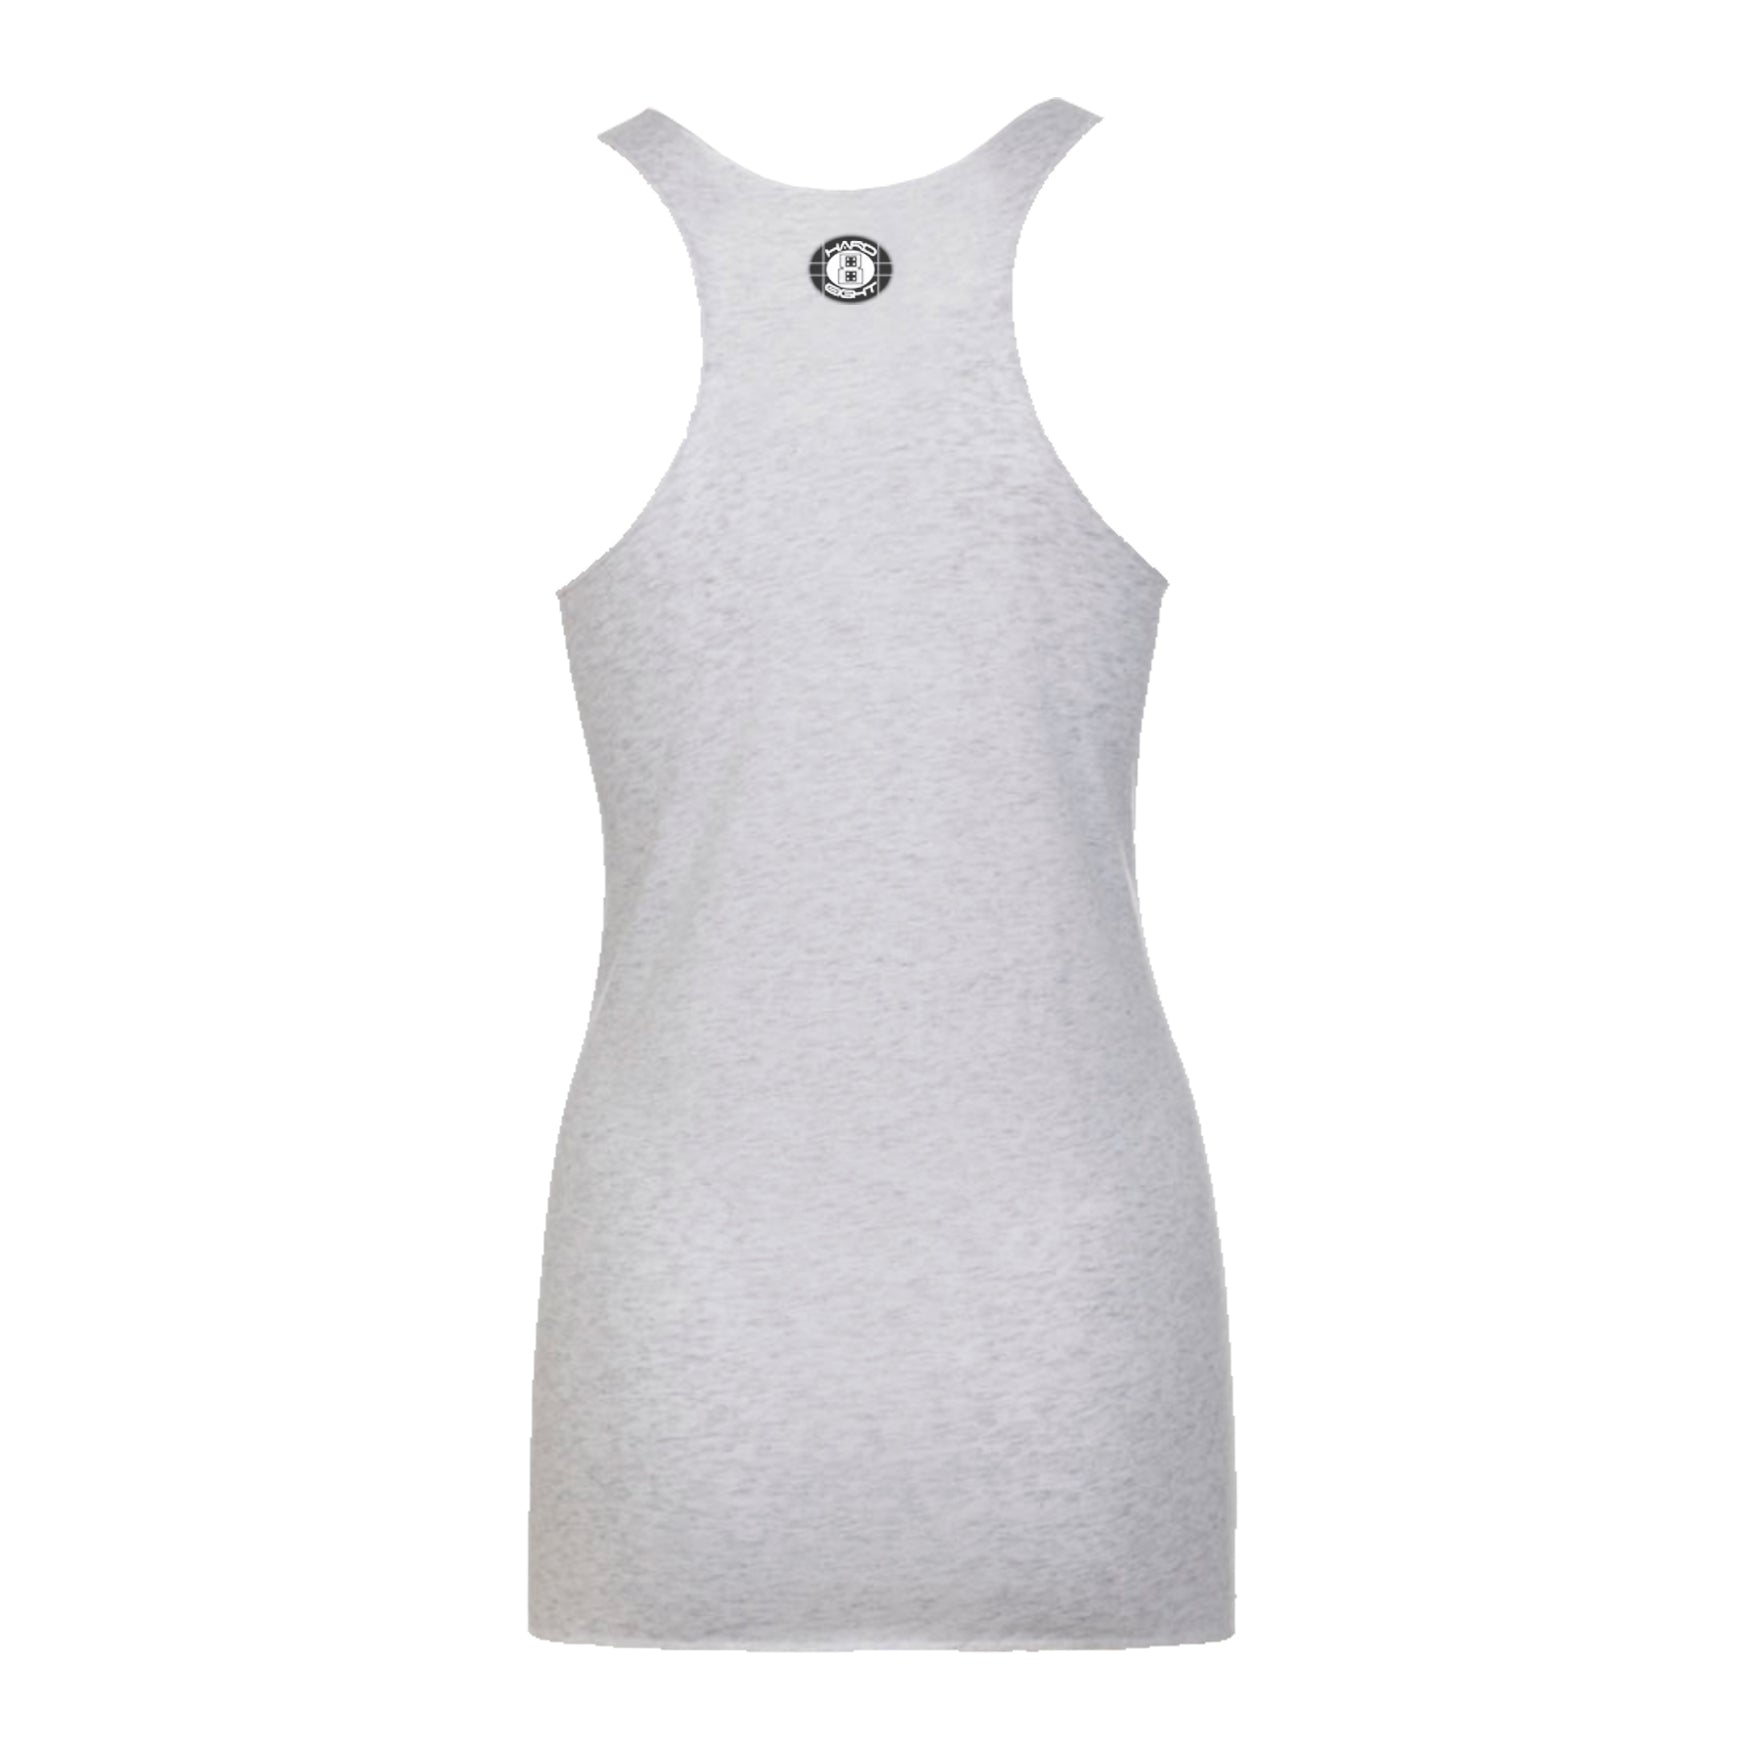 "WOMEN'S ""ROSE SKULL""  RAW EDGE RACER BACK TANK Oatmeal Heather"